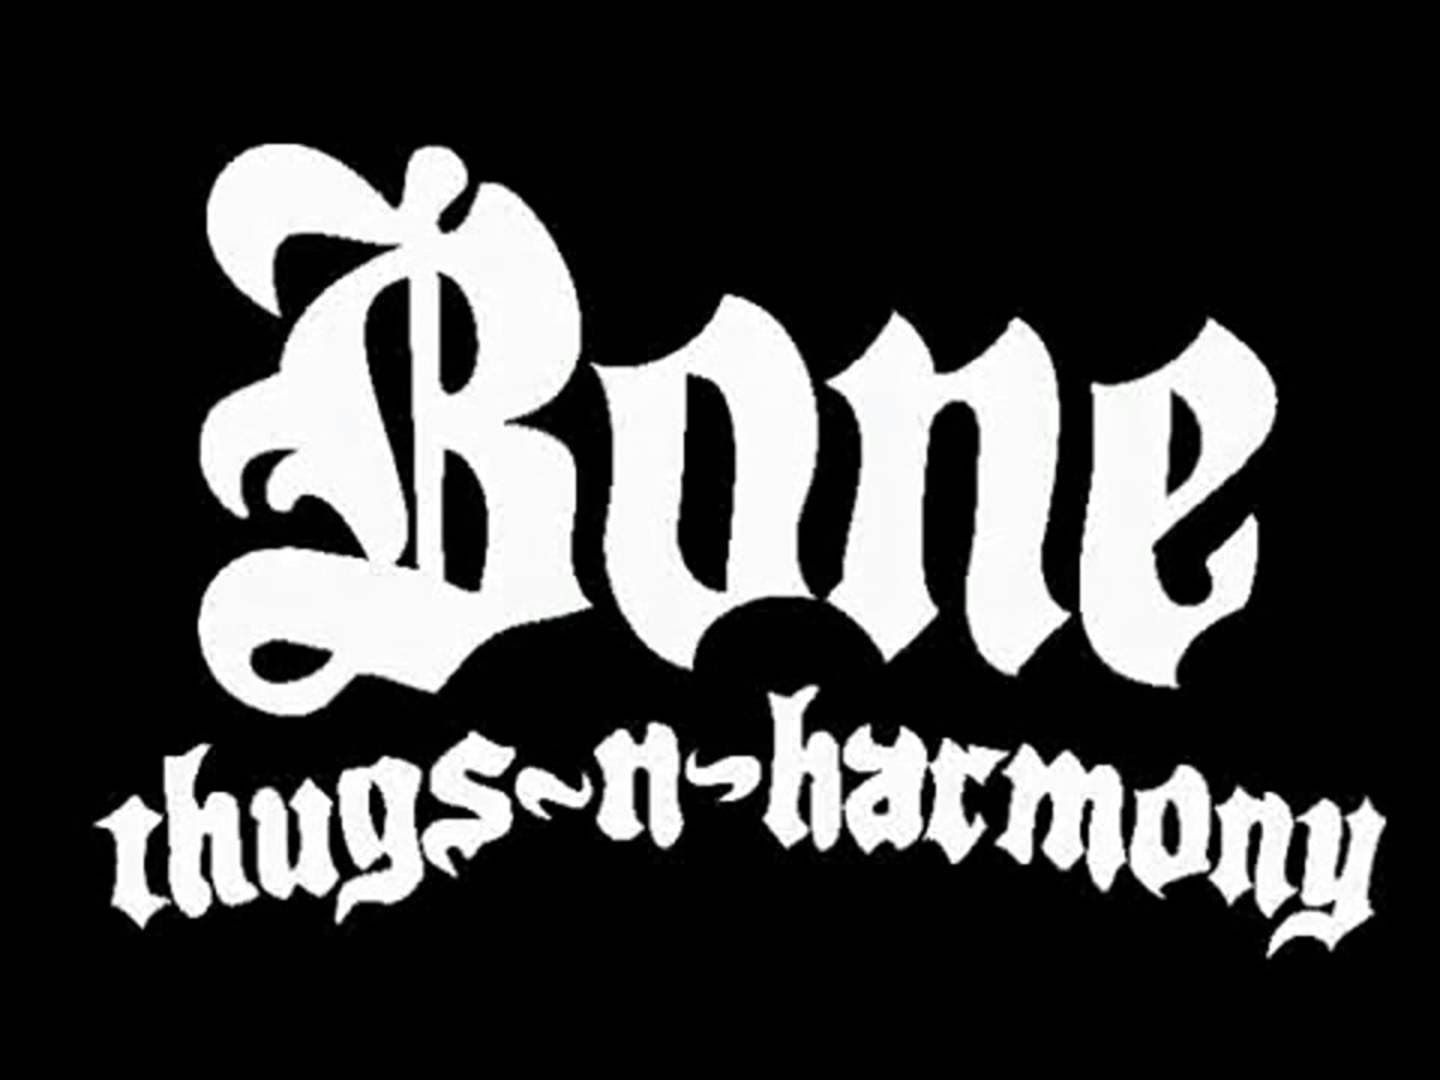 Bone Thugs N Harmony 2hr Hit Mix Thug Harmony Typographic Design